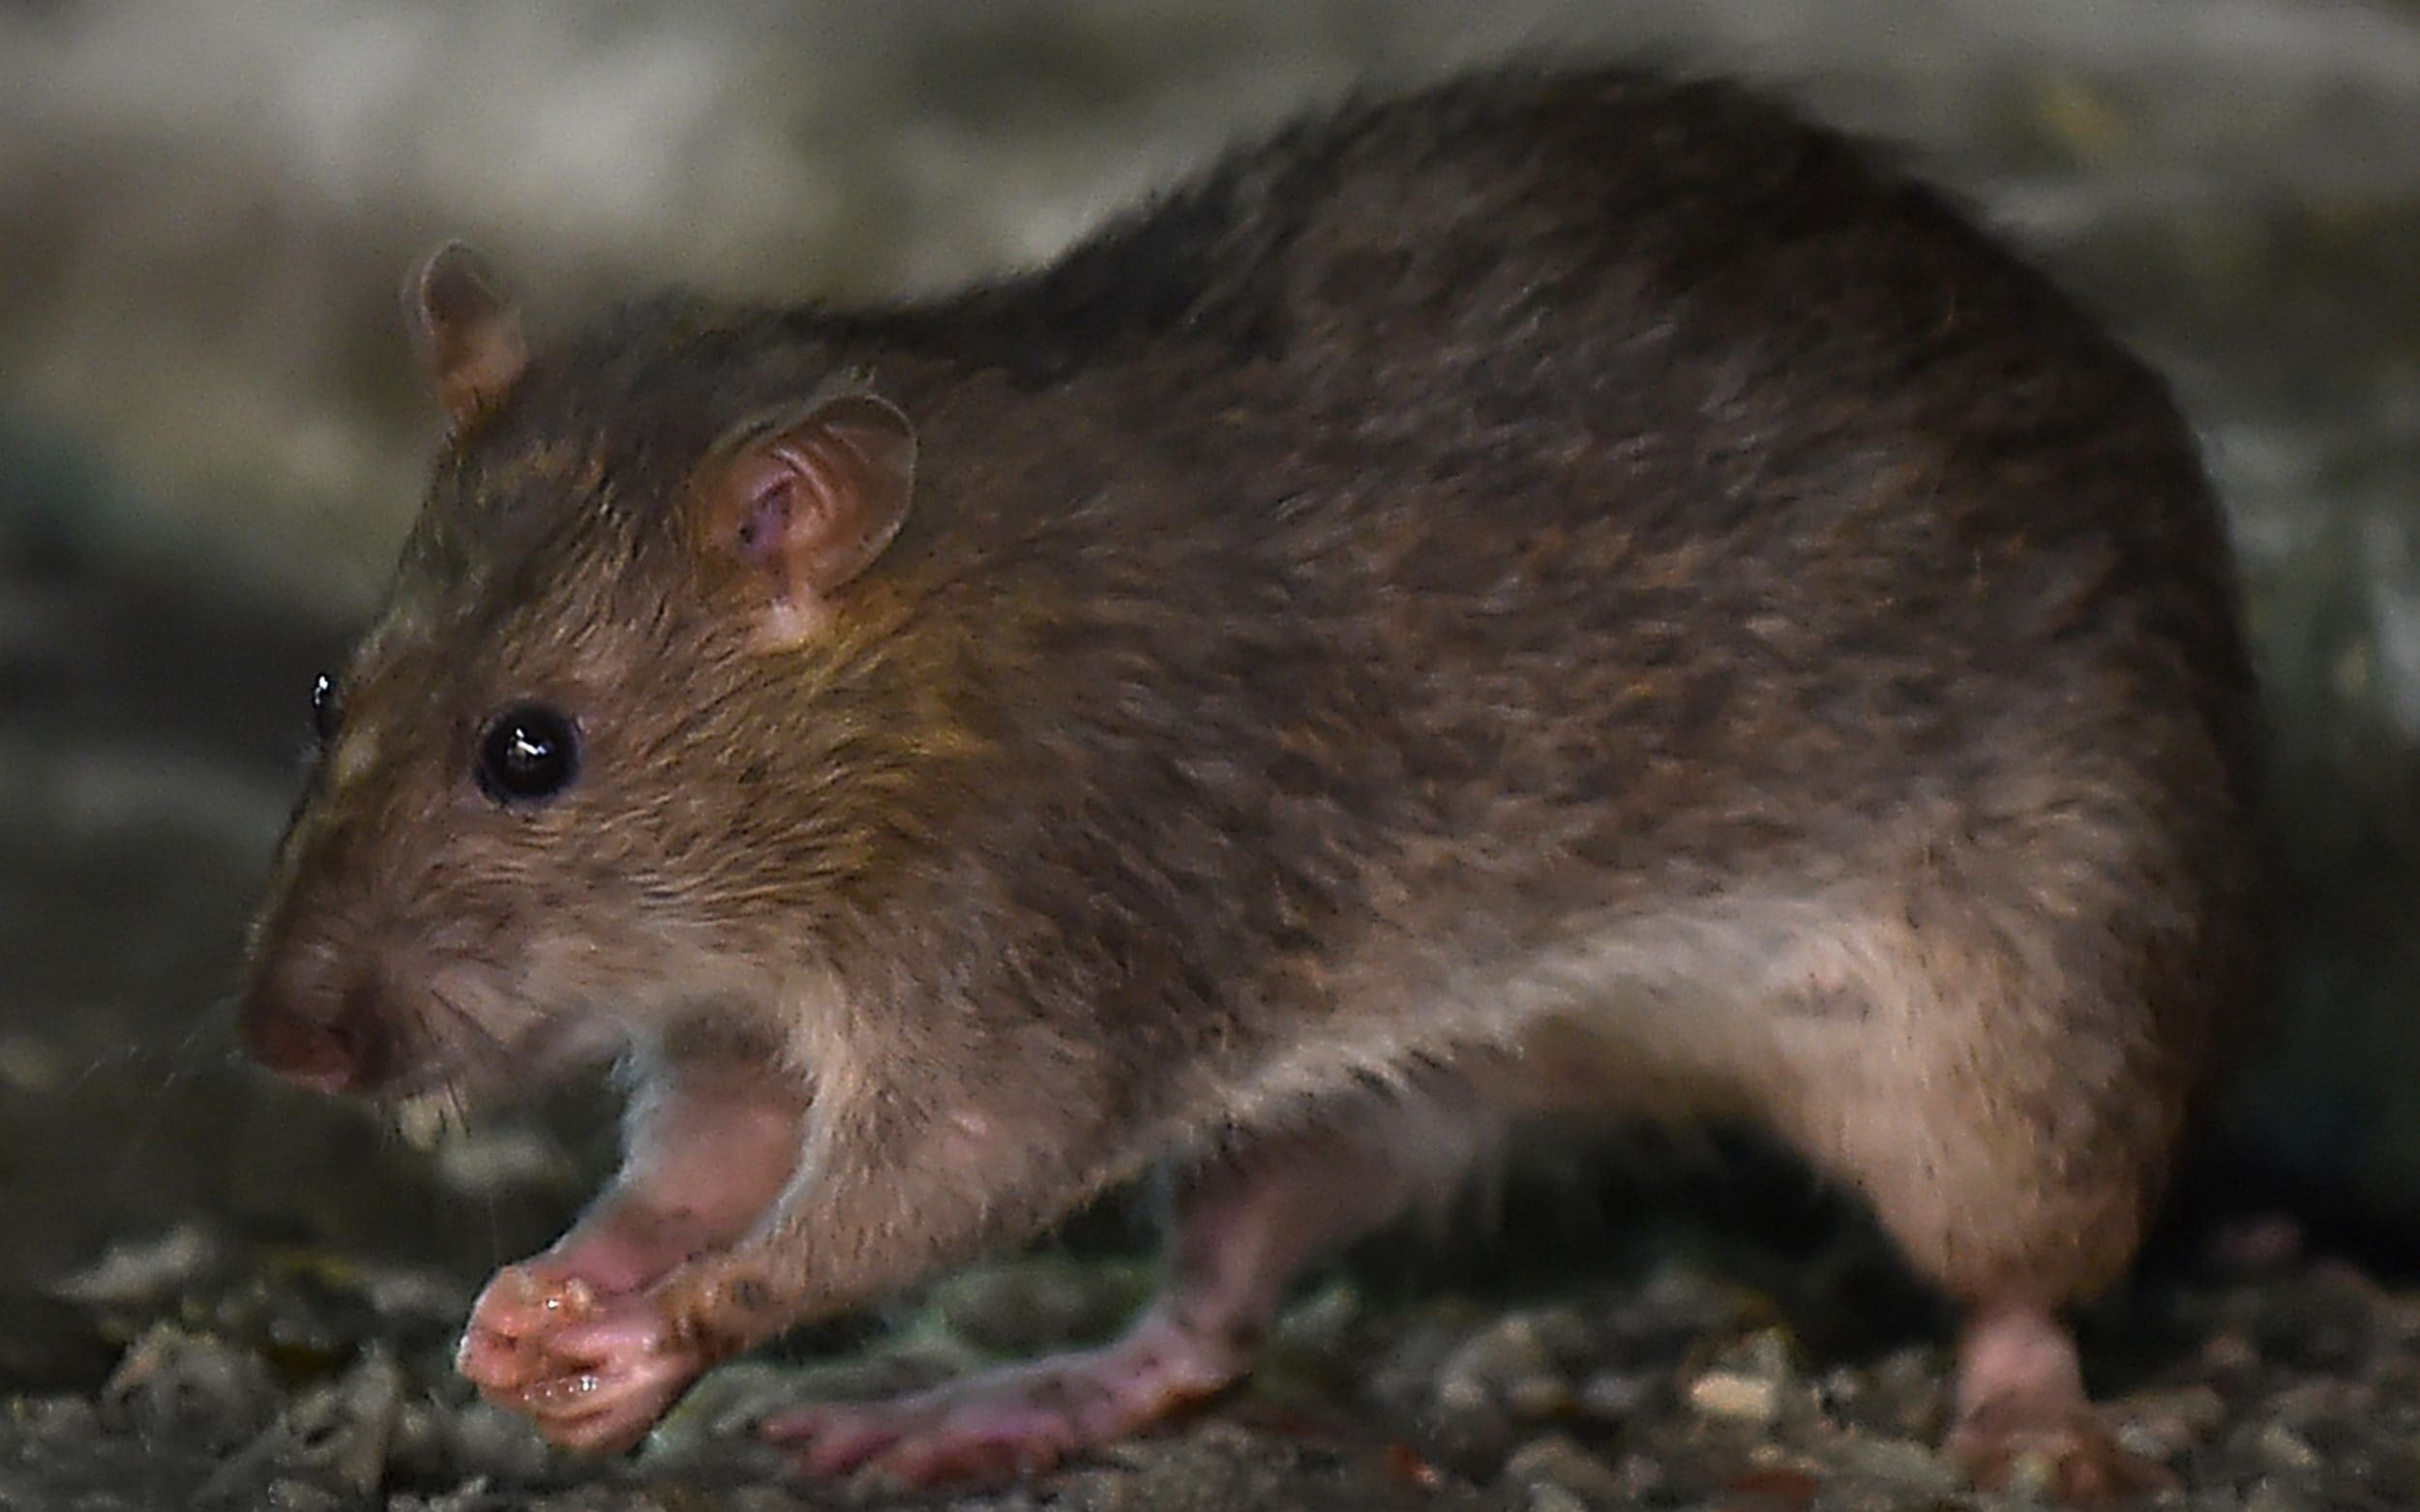 Panama sees rise in deadly hantavirus